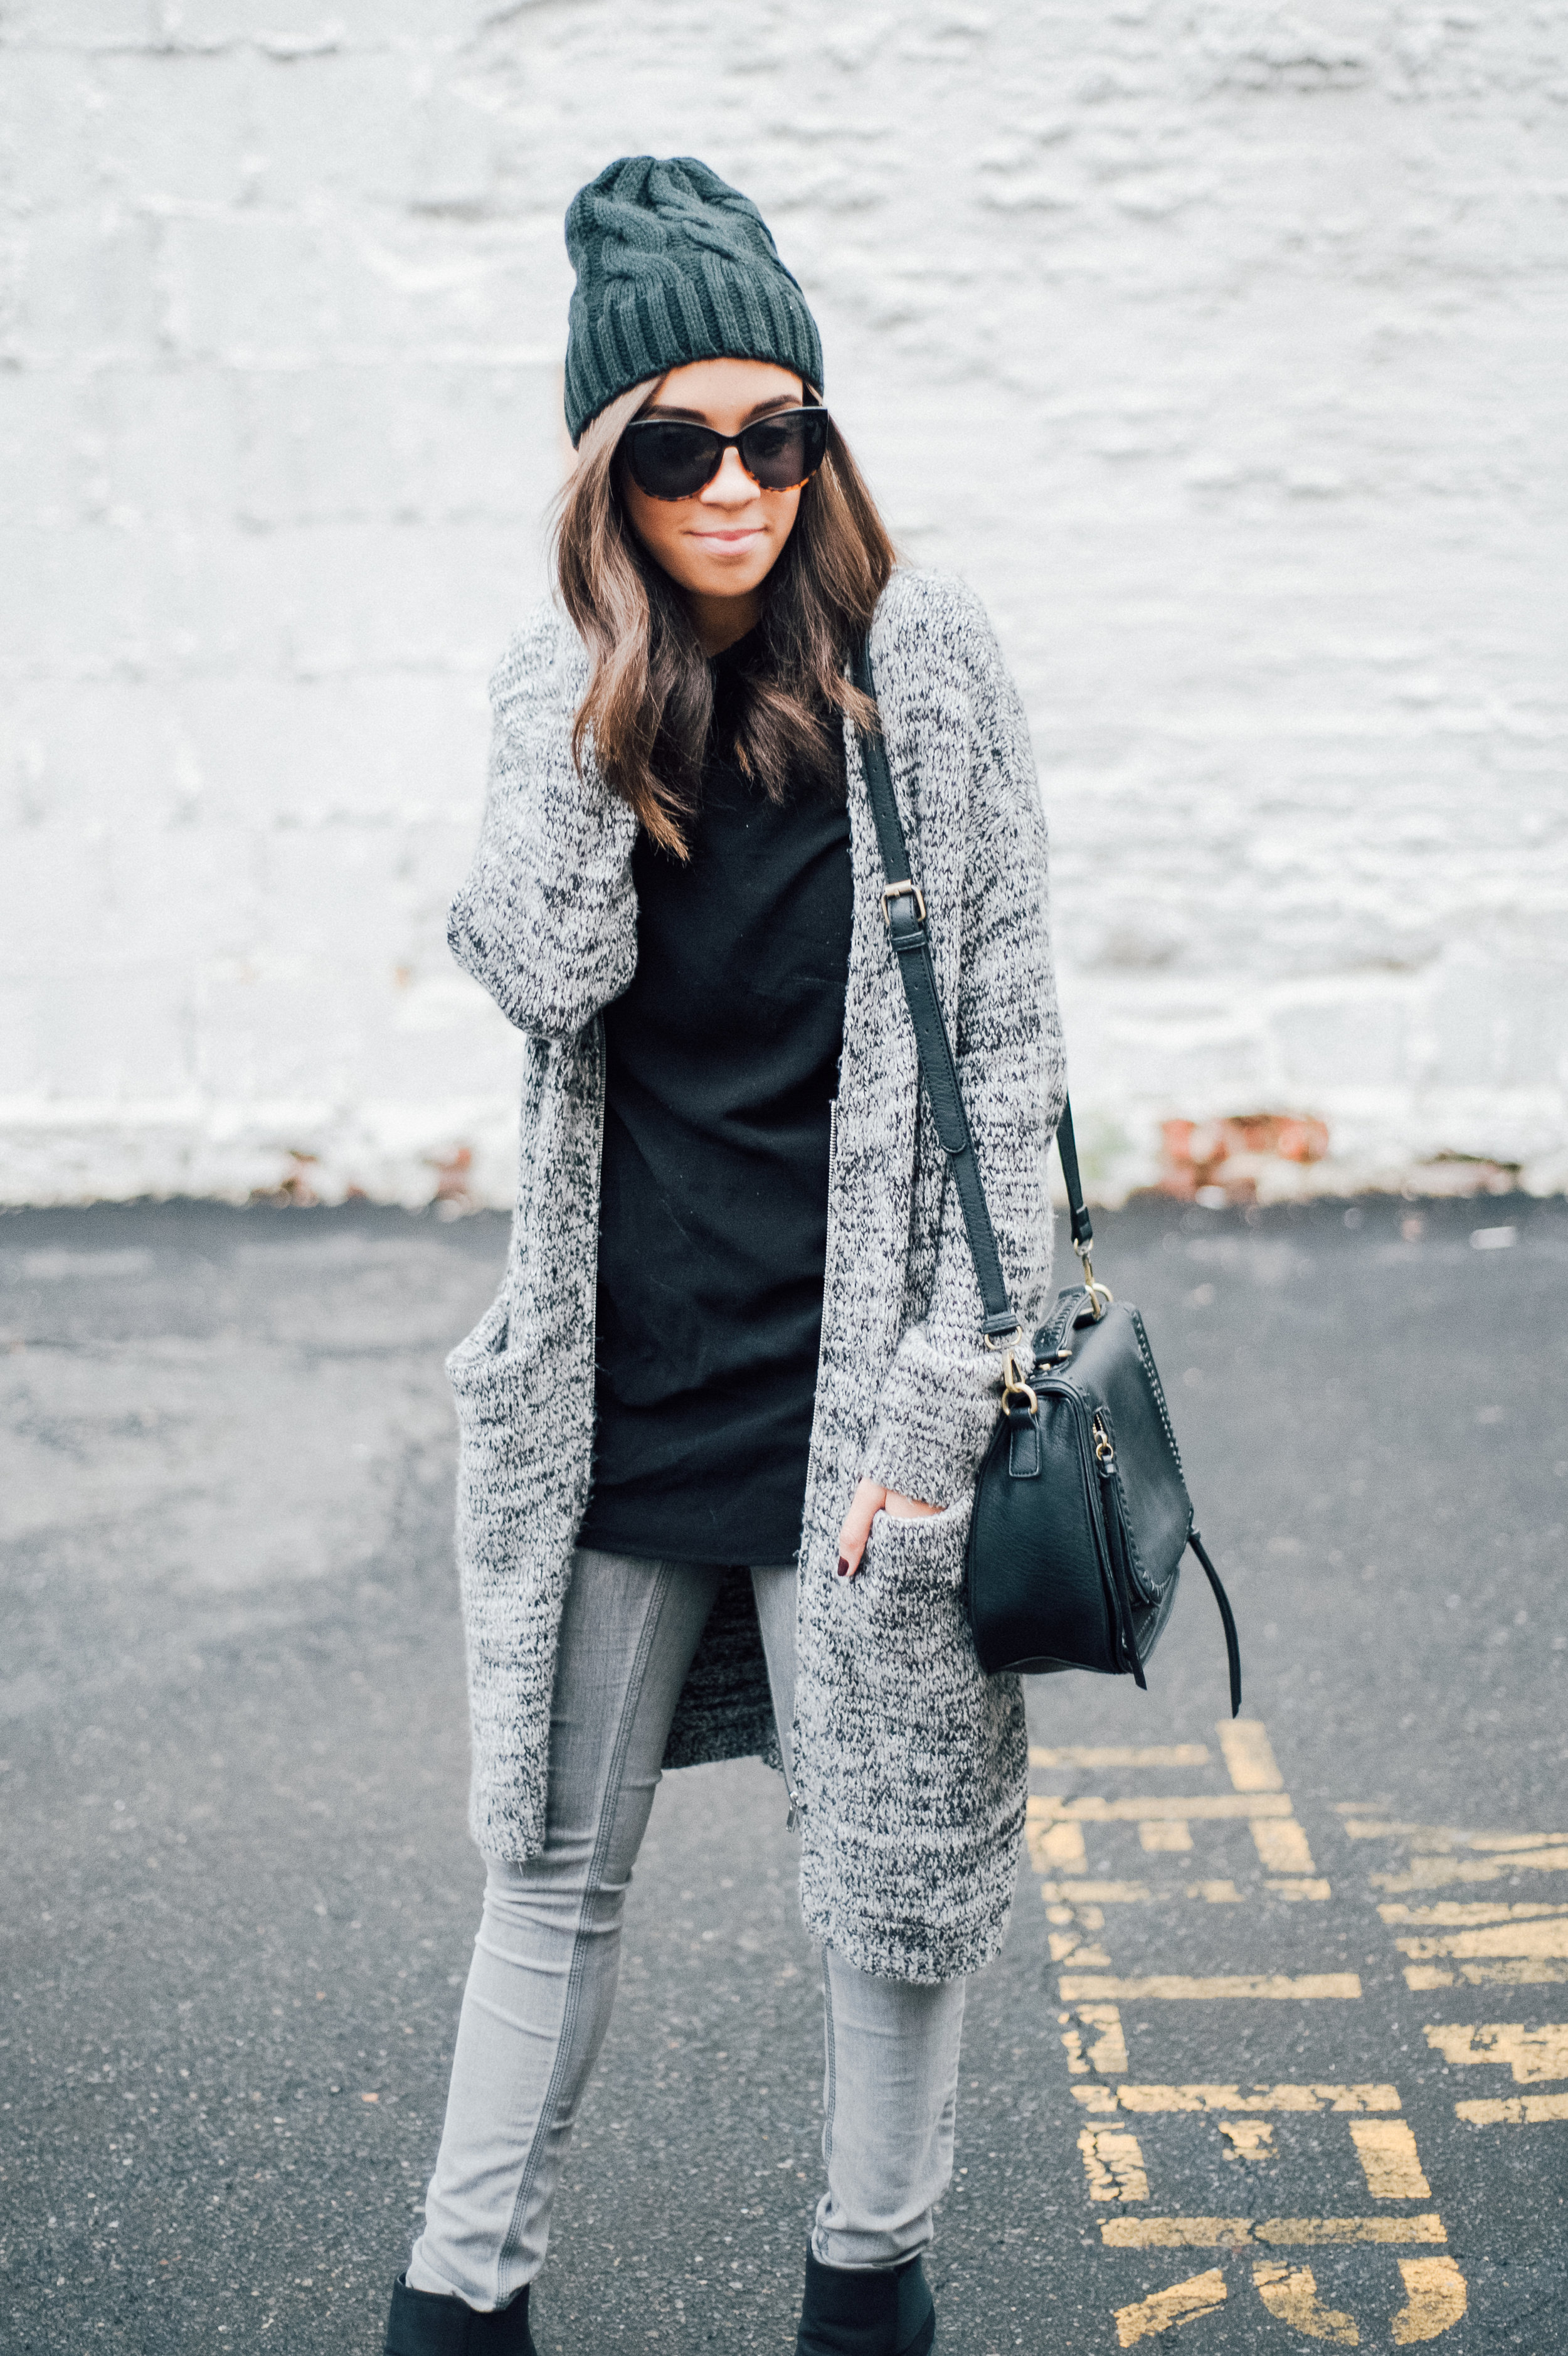 Cable knit hat + Marled Sweater 14.jpg